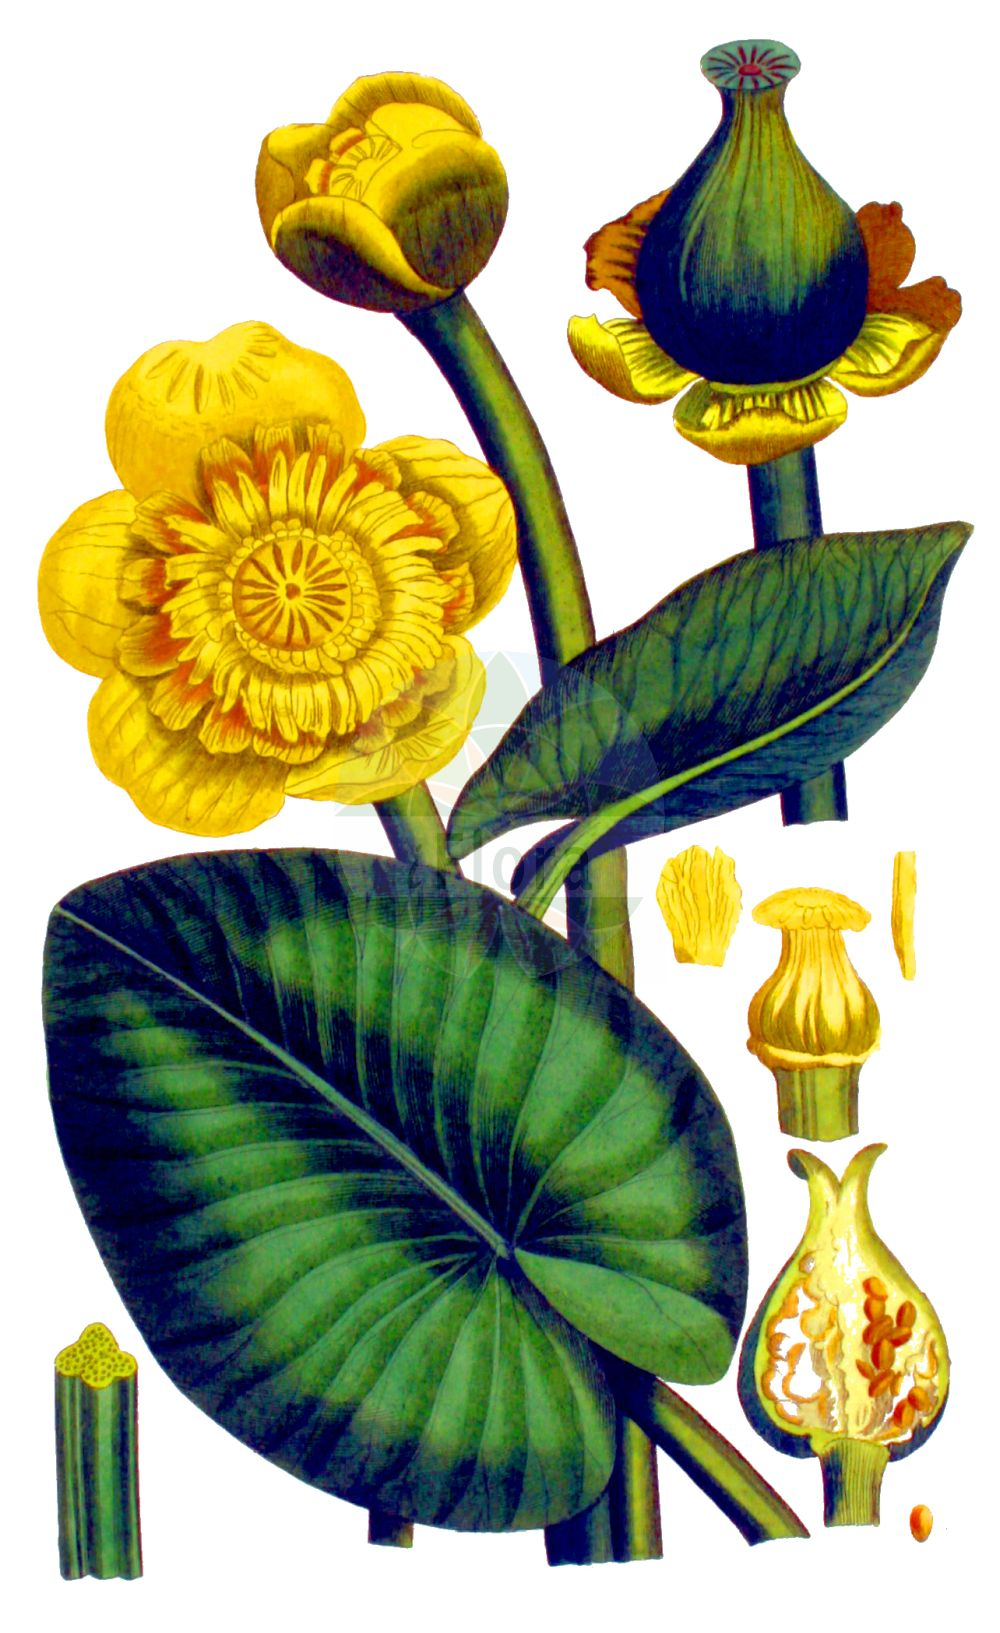 Historische Abbildung von Nuphar lutea (Gelbe Teichrose - Yellow Water-lily). Das Bild zeigt Blatt, Bluete, Frucht und Same. ---- Historical Drawing of Nuphar lutea (Gelbe Teichrose - Yellow Water-lily).The image is showing leaf, flower, fruit and seed.(Nuphar lutea,Gelbe Teichrose,Yellow Water-lily,Nenuphar luteum,Nuphar lutea,Nuphar sericea,Nymphaea lutea,Nymphozanthus luteus,Gelbe Teichrose,Grosse Teichrose,Mummel,Yellow Water-lily,Cow Lily,Spatterdock,Yellow Pond Lily,Nuphar,Teichrose,Pond-lily,Nymphaeaceae,Seerosengewaechse,Water-lily family,Blatt,Bluete,Frucht,Same,leaf,flower,fruit,seed,Kops (1800-1934))